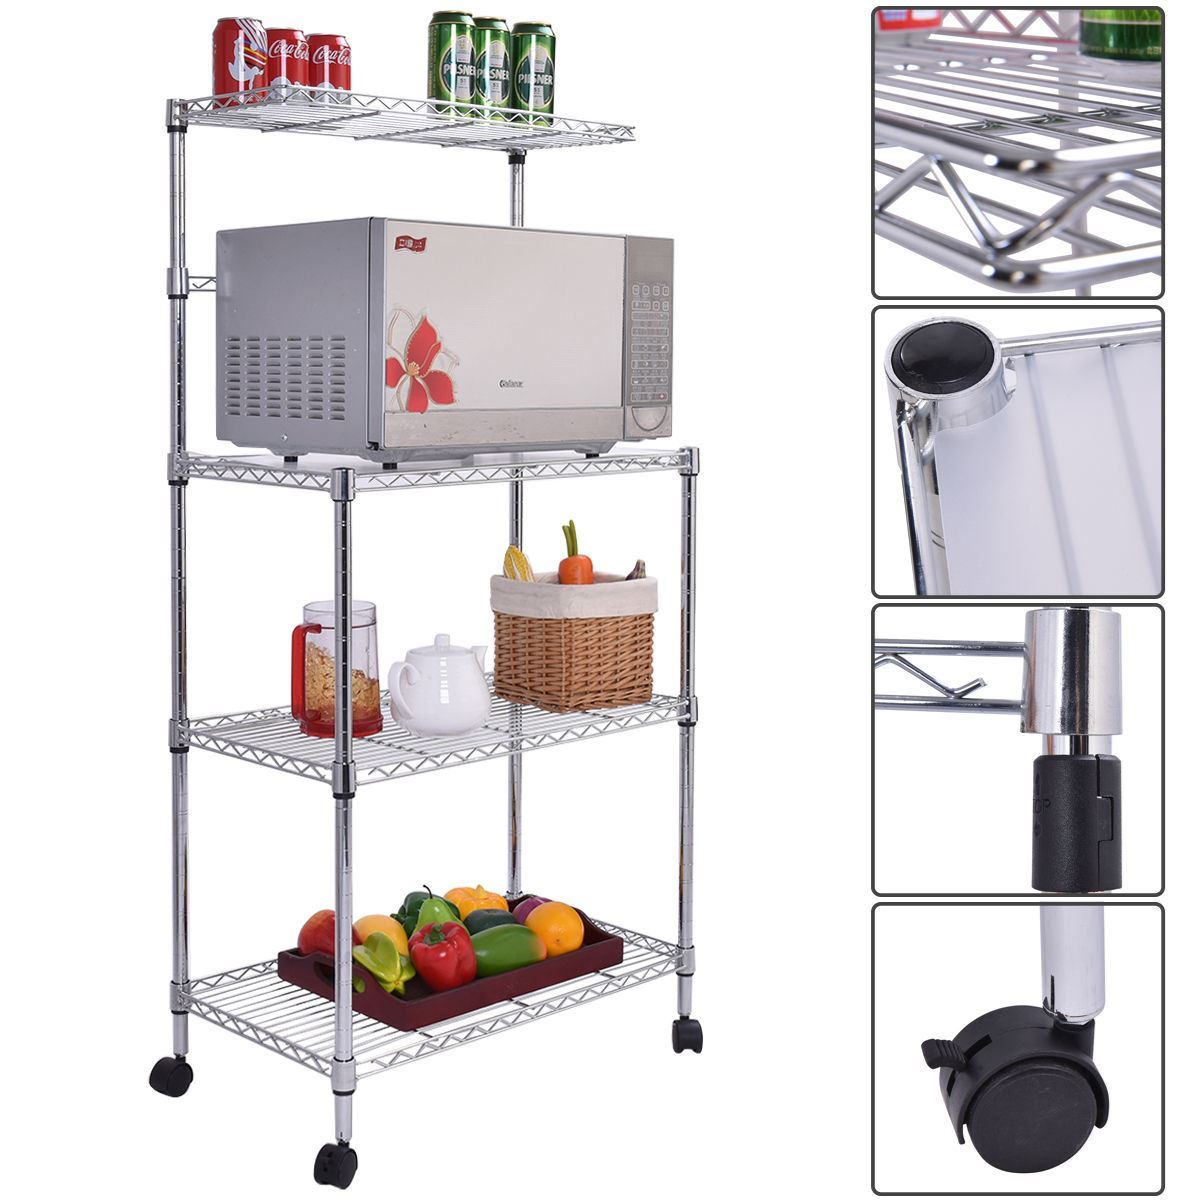 Kitchen Baker's Rack Microwave Oven Stand Storage Cart Workstation Shelf 3-Tier